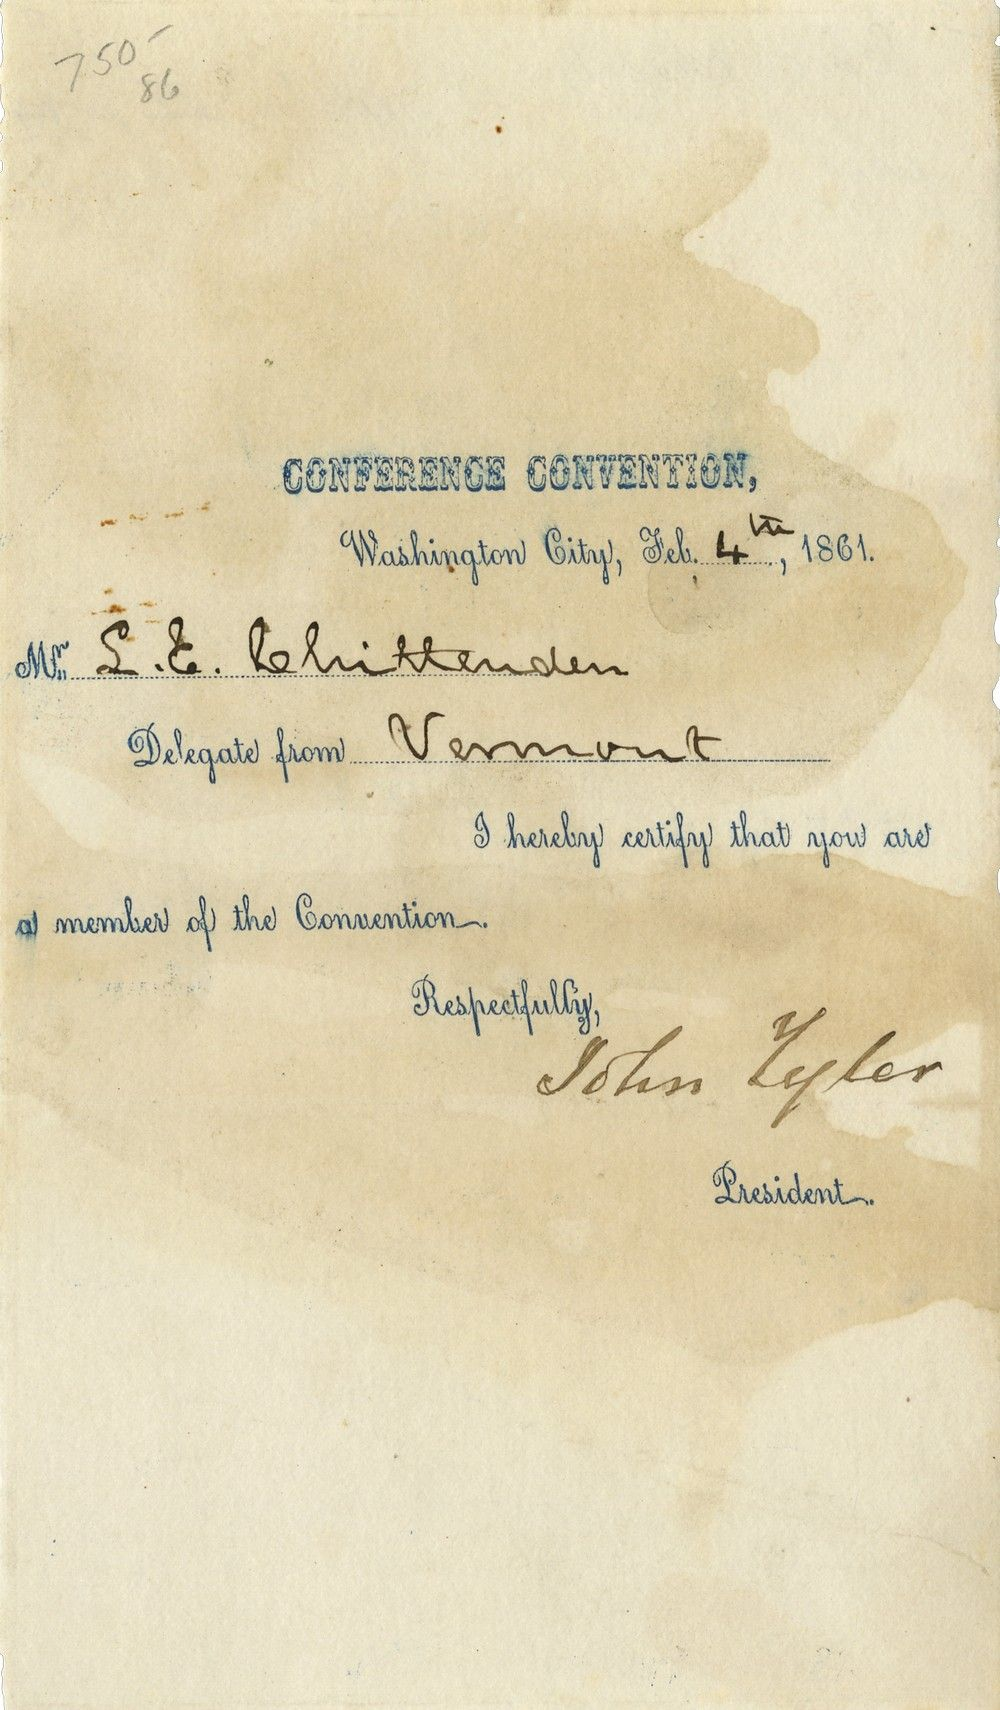 John Tyler, as President of the 1861 Washington Peace Convention, Certifies a Vermont Delegate